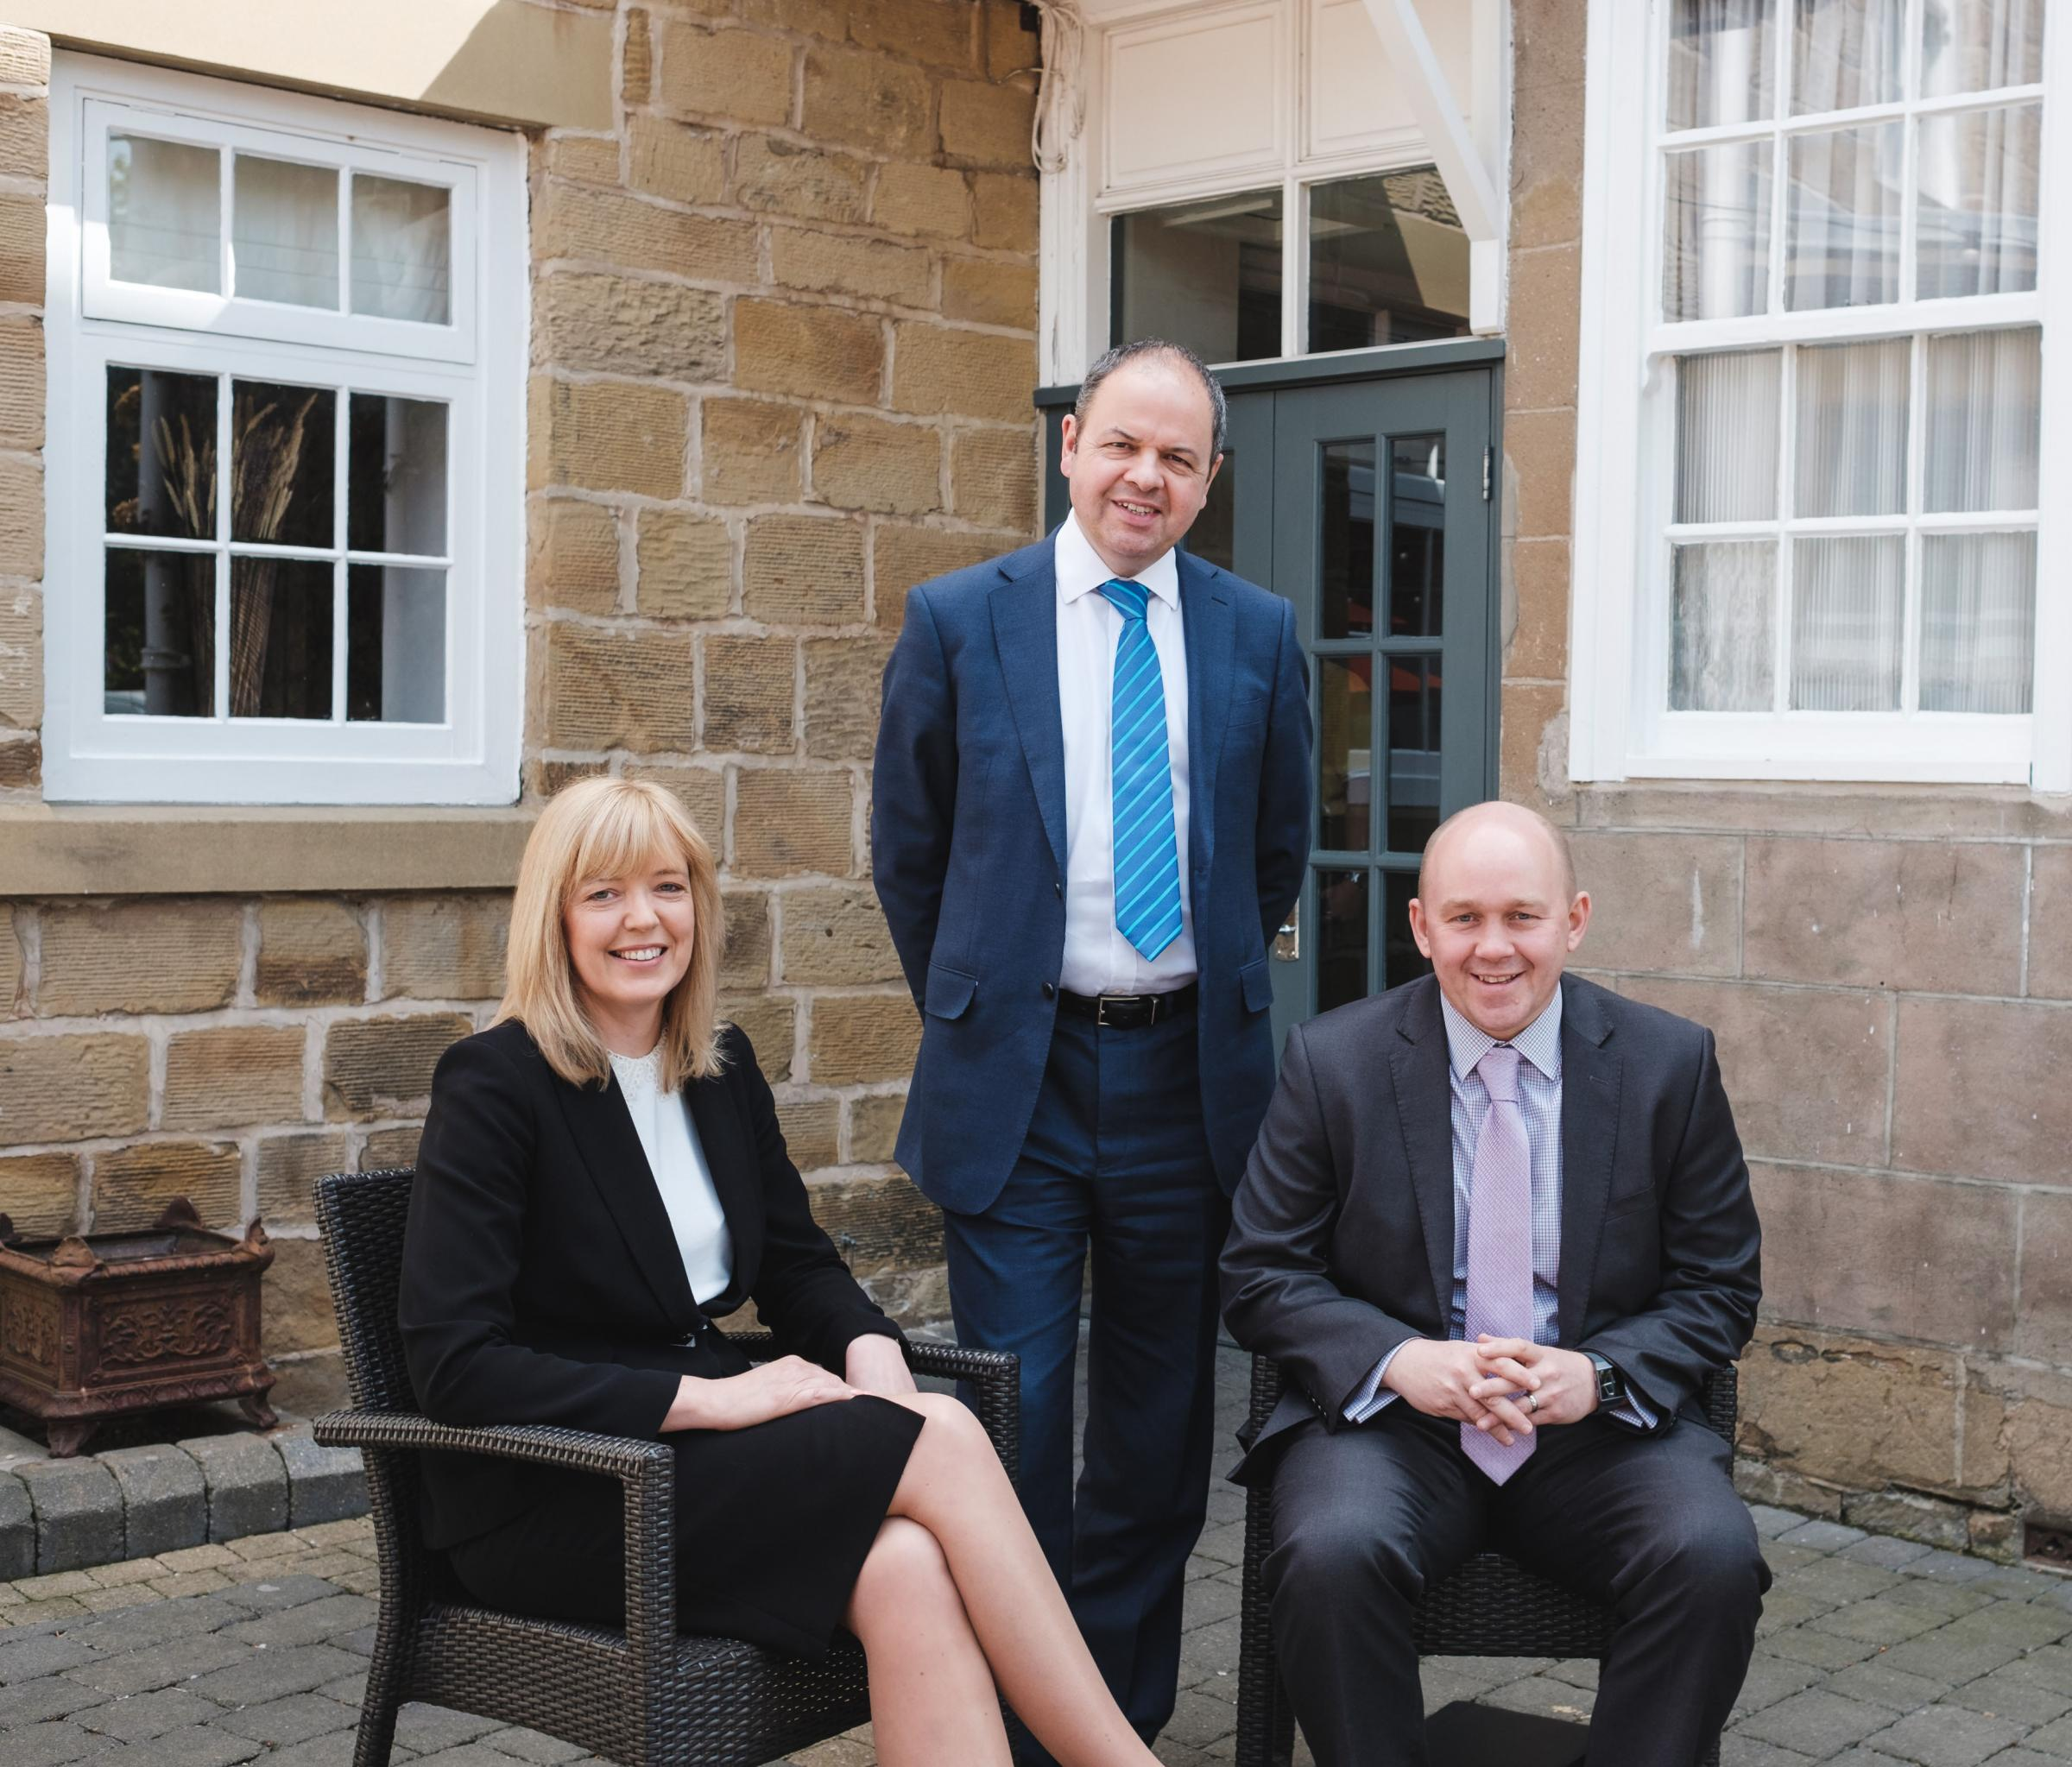 BHP Partner promotion, from left, Jenny Hurst, Paul Captieux and Dean Pearson